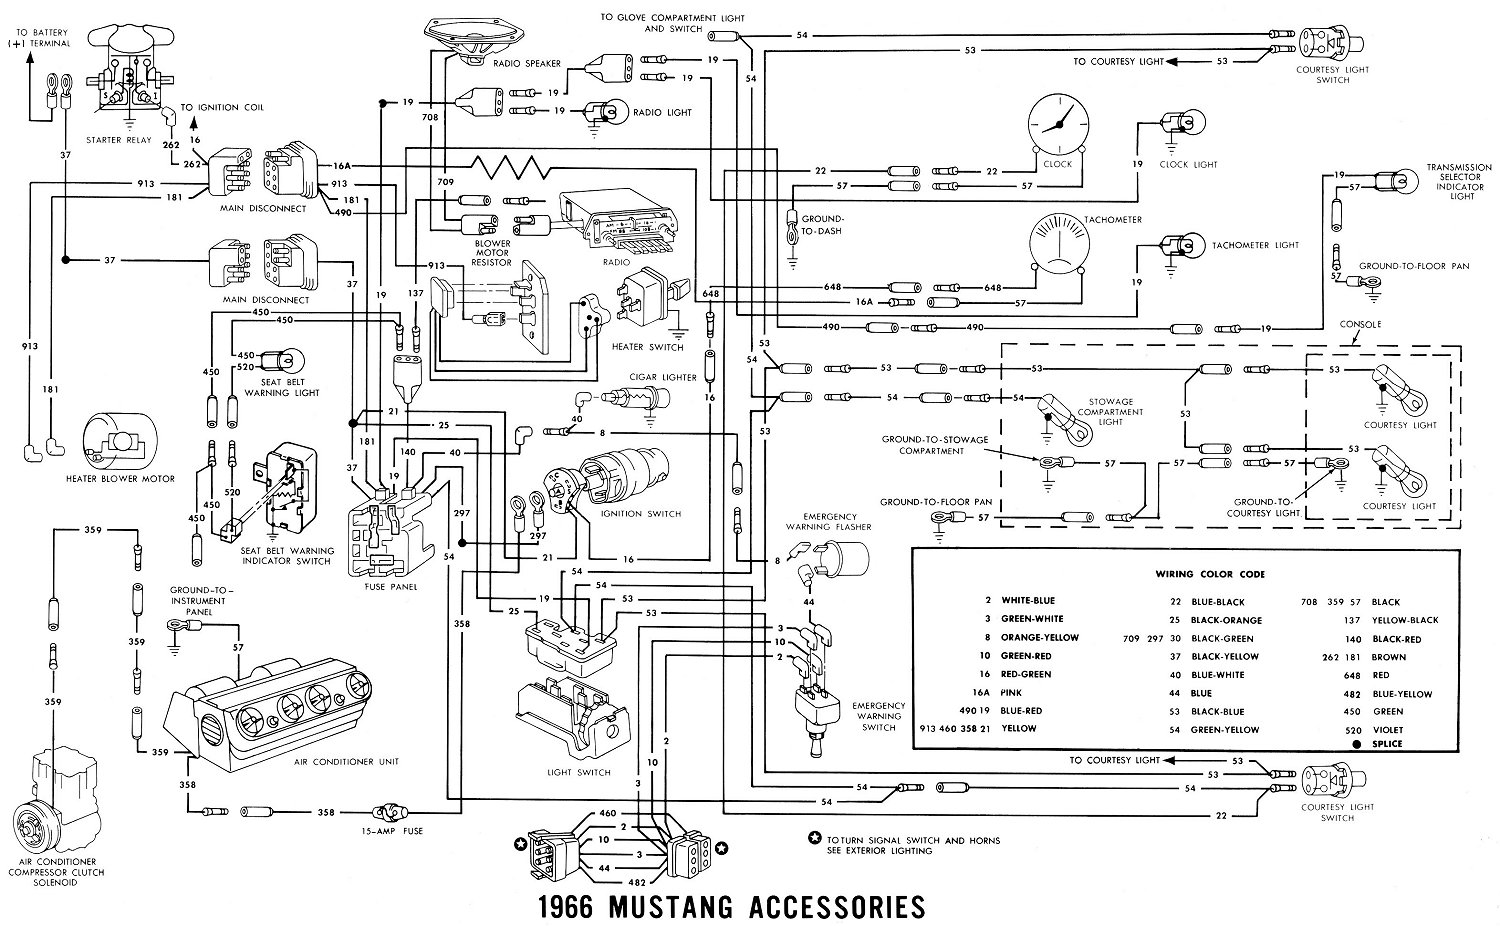 66acces1 66 mustang wiring diagram online 65 ford mustang wiring diagram 1965 ford mustang wiring diagrams at gsmx.co